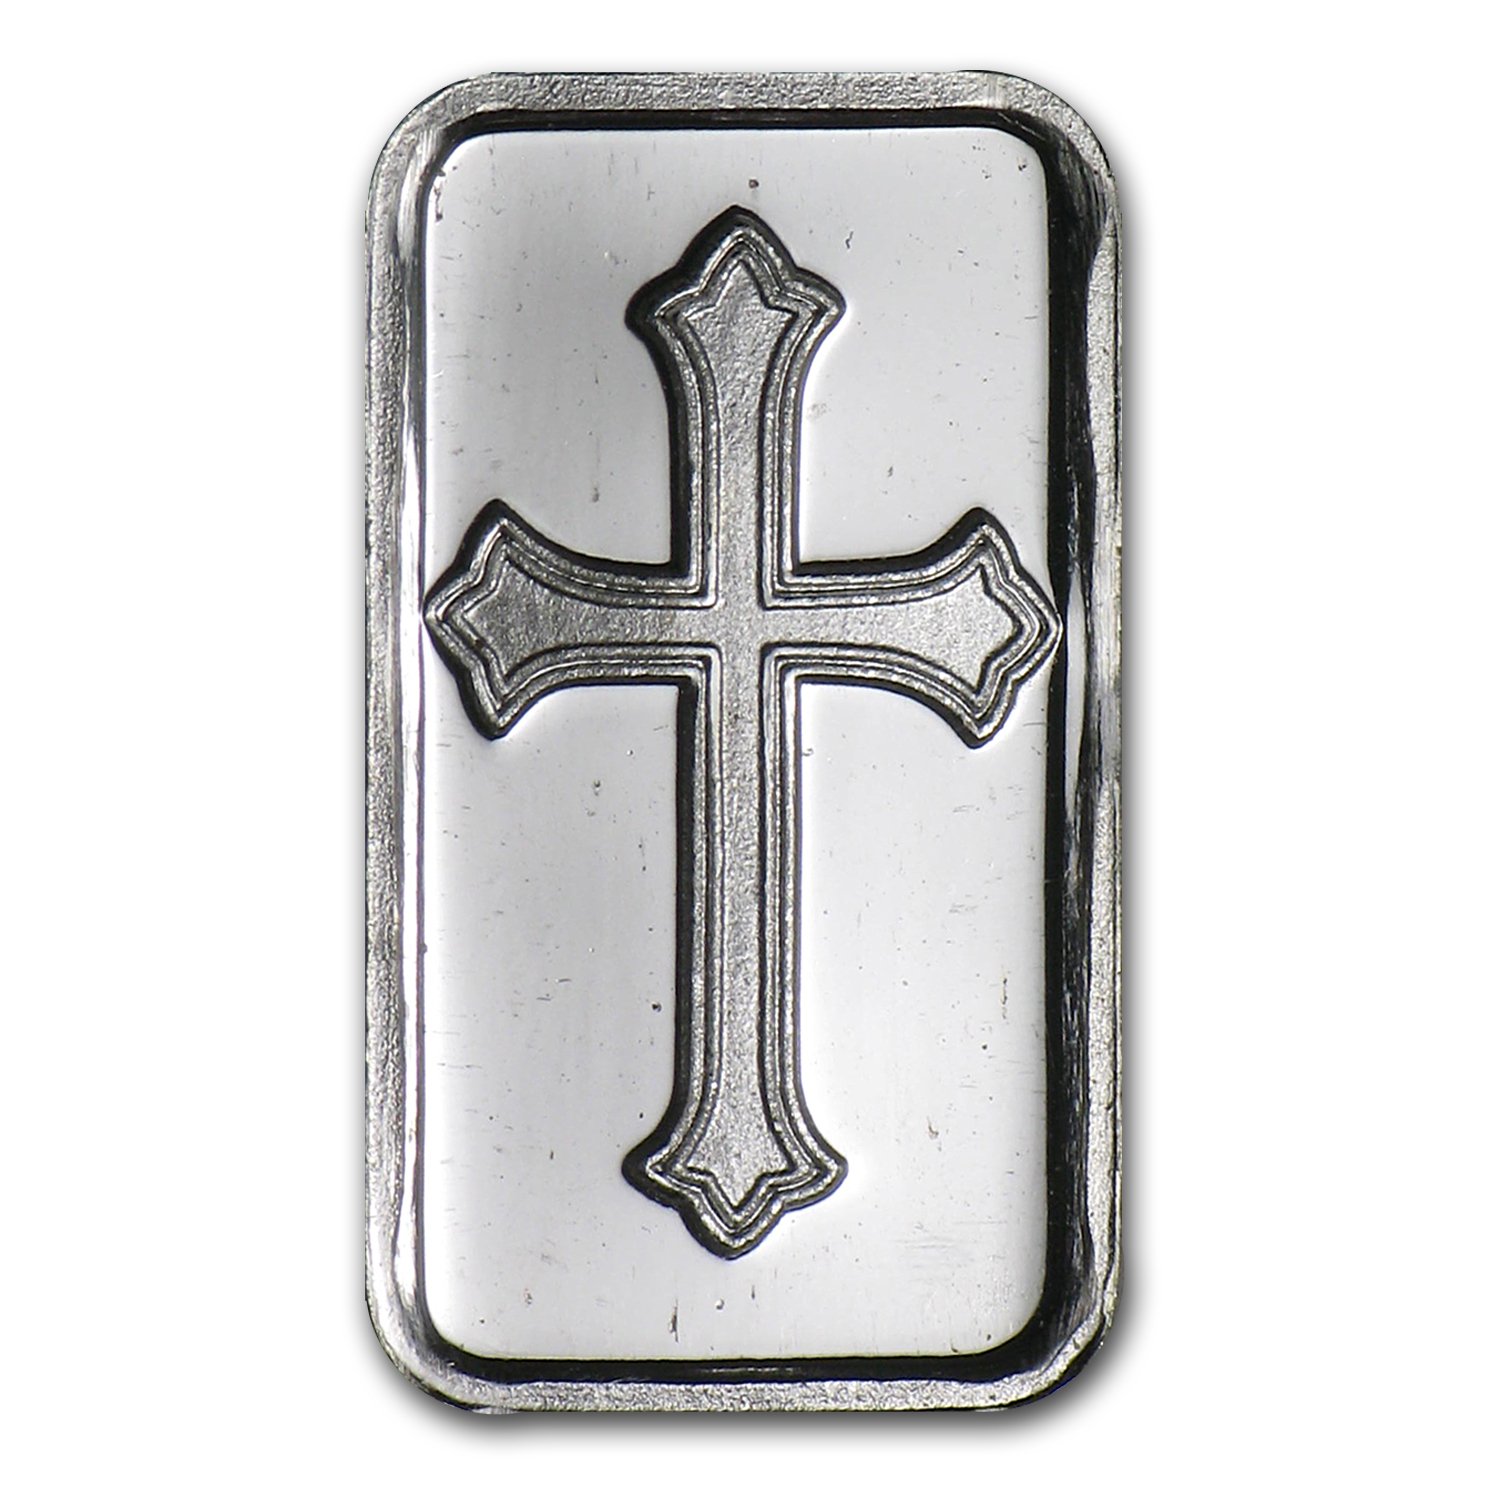 1 gram Silver Bars - Cross